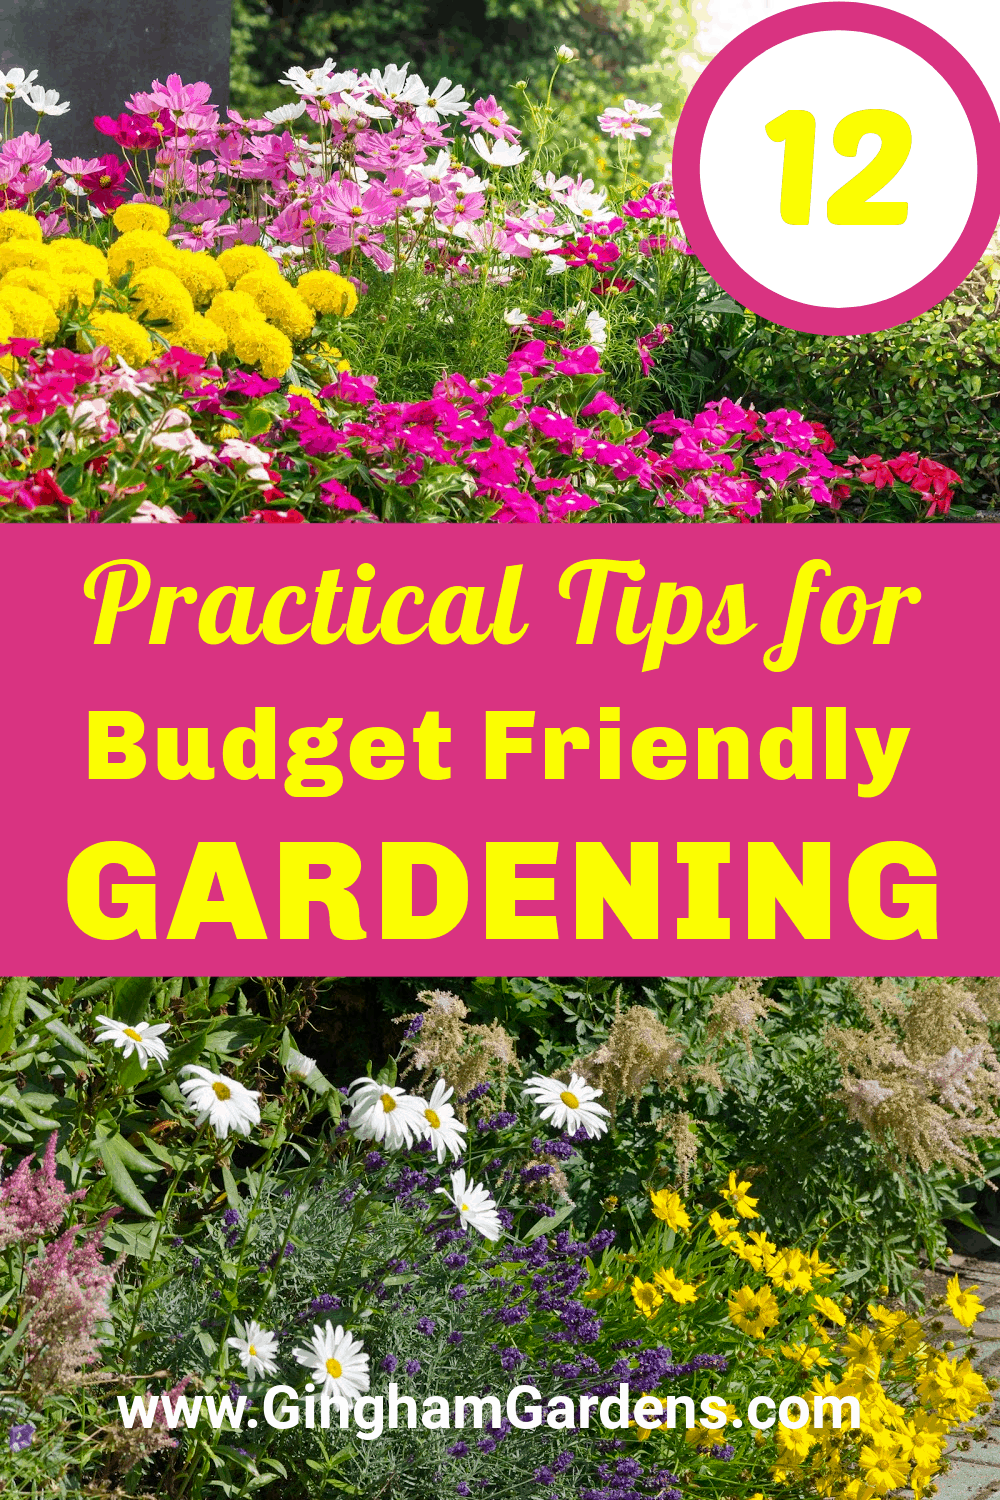 Images of Flower Gardens with Text Overlay - Practical Tips for Budget Friendly Gardening